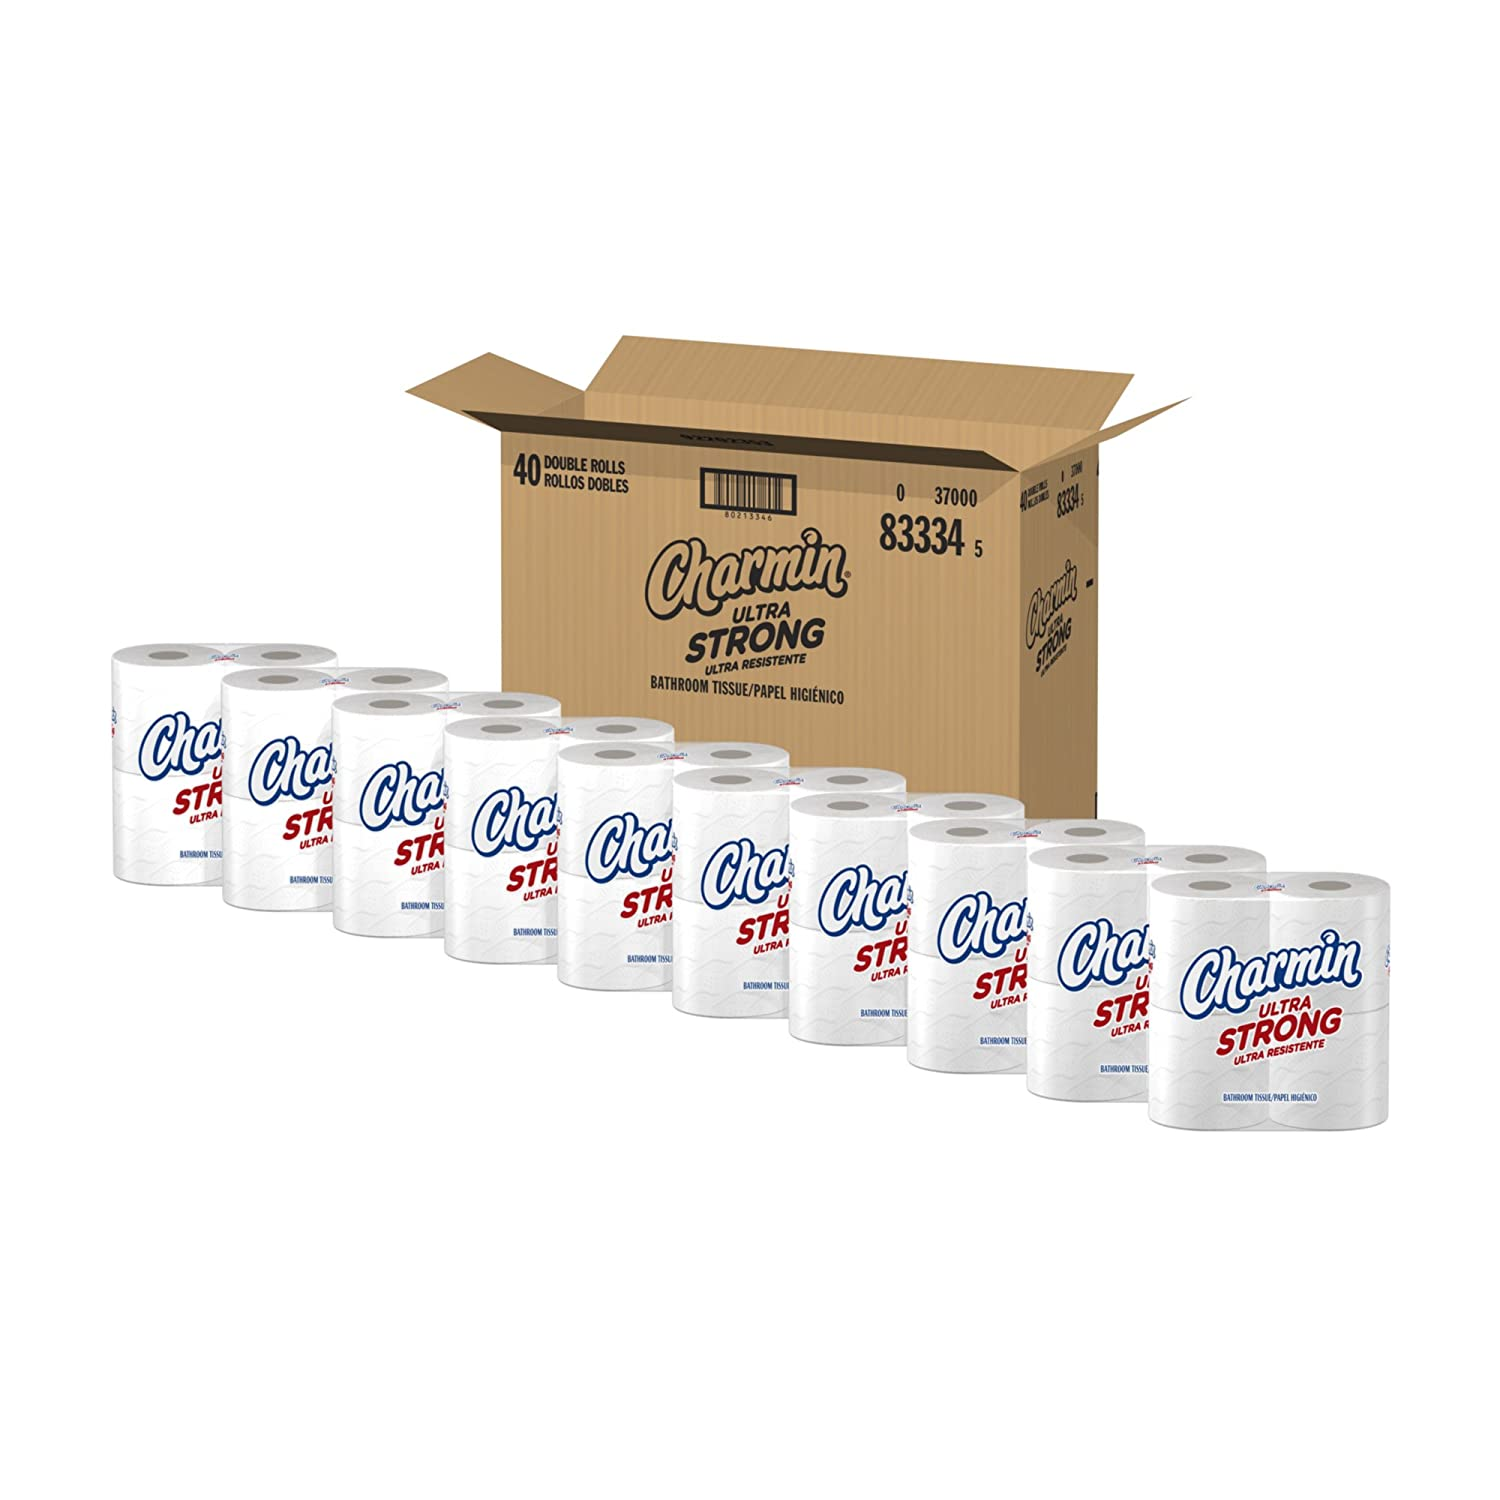 Amazon.com: Charmin Ultra Strong Toilet Paper, Double Rolls, 40 ...